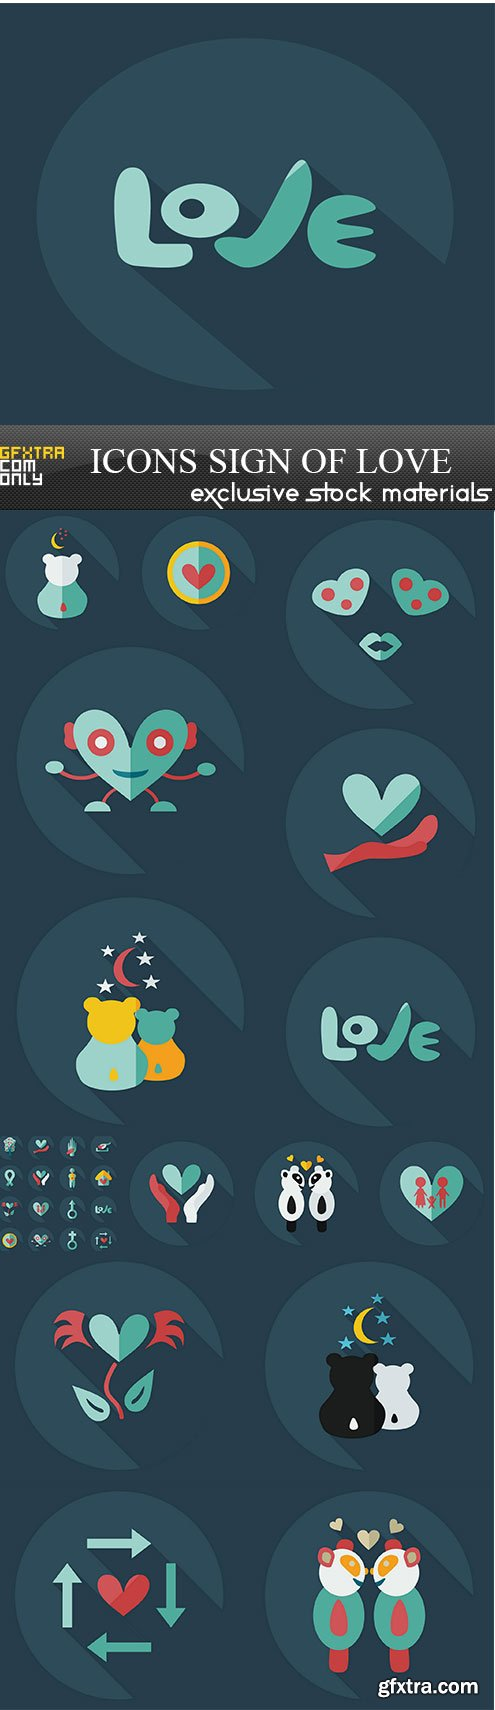 Flat modern design with shadow icons sign of love, 15 х EPS